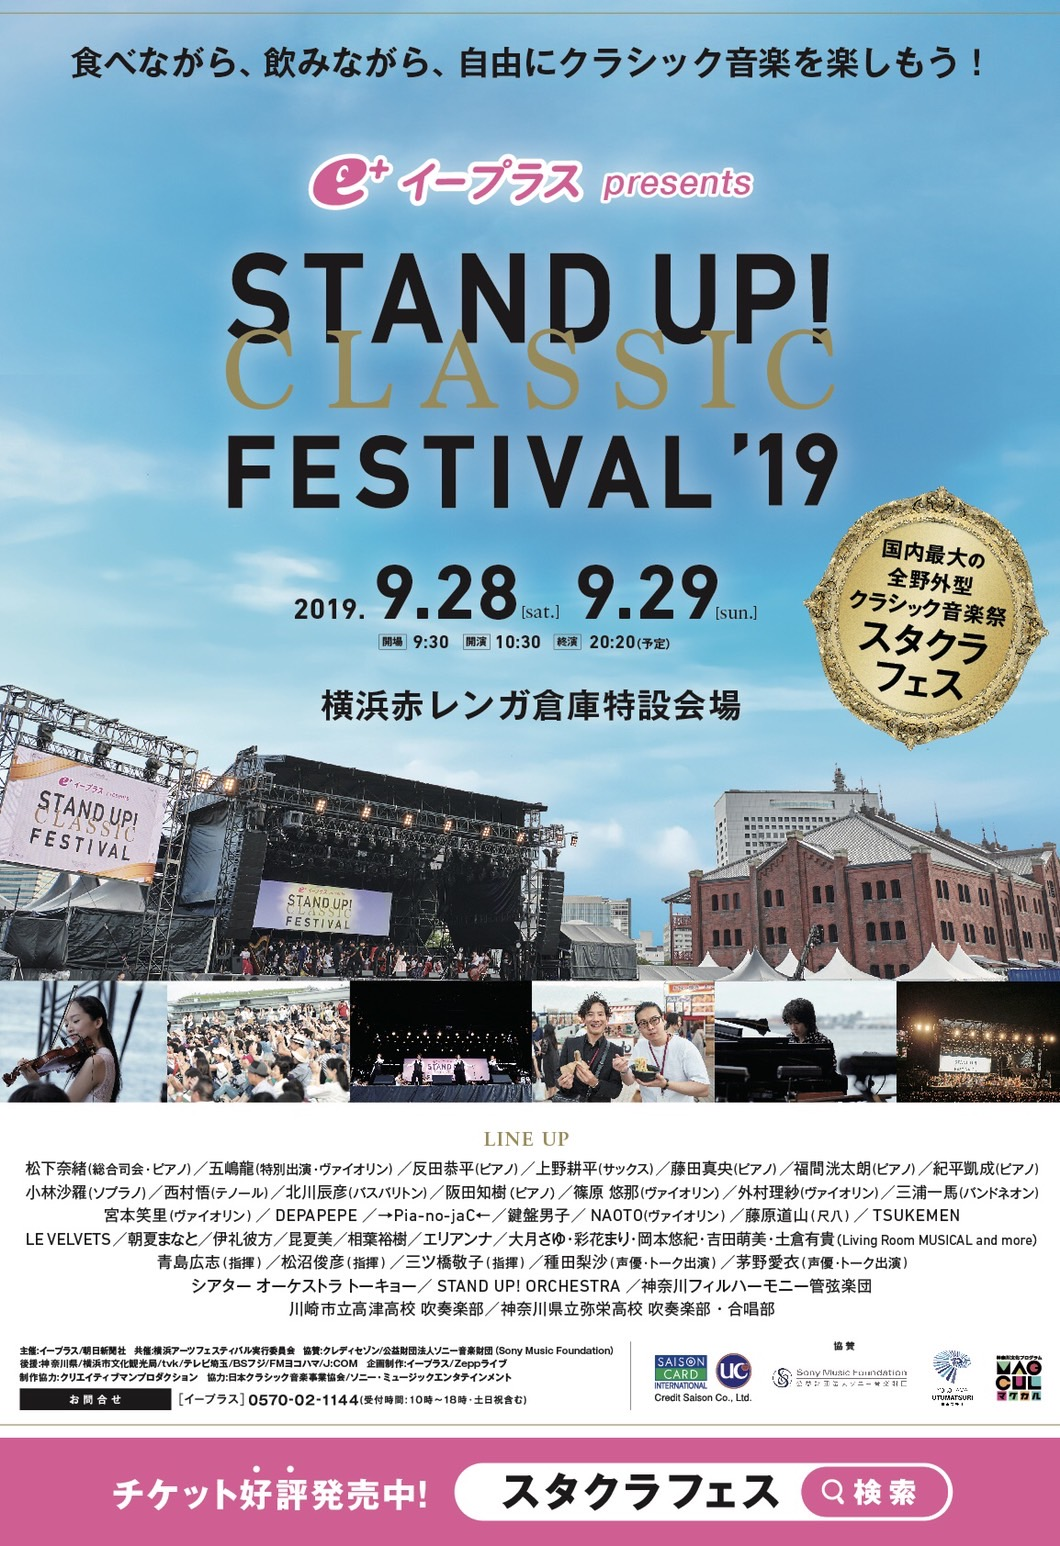 2019.9.28-29 STAND UP! CLASSIC FESTIVAL '19